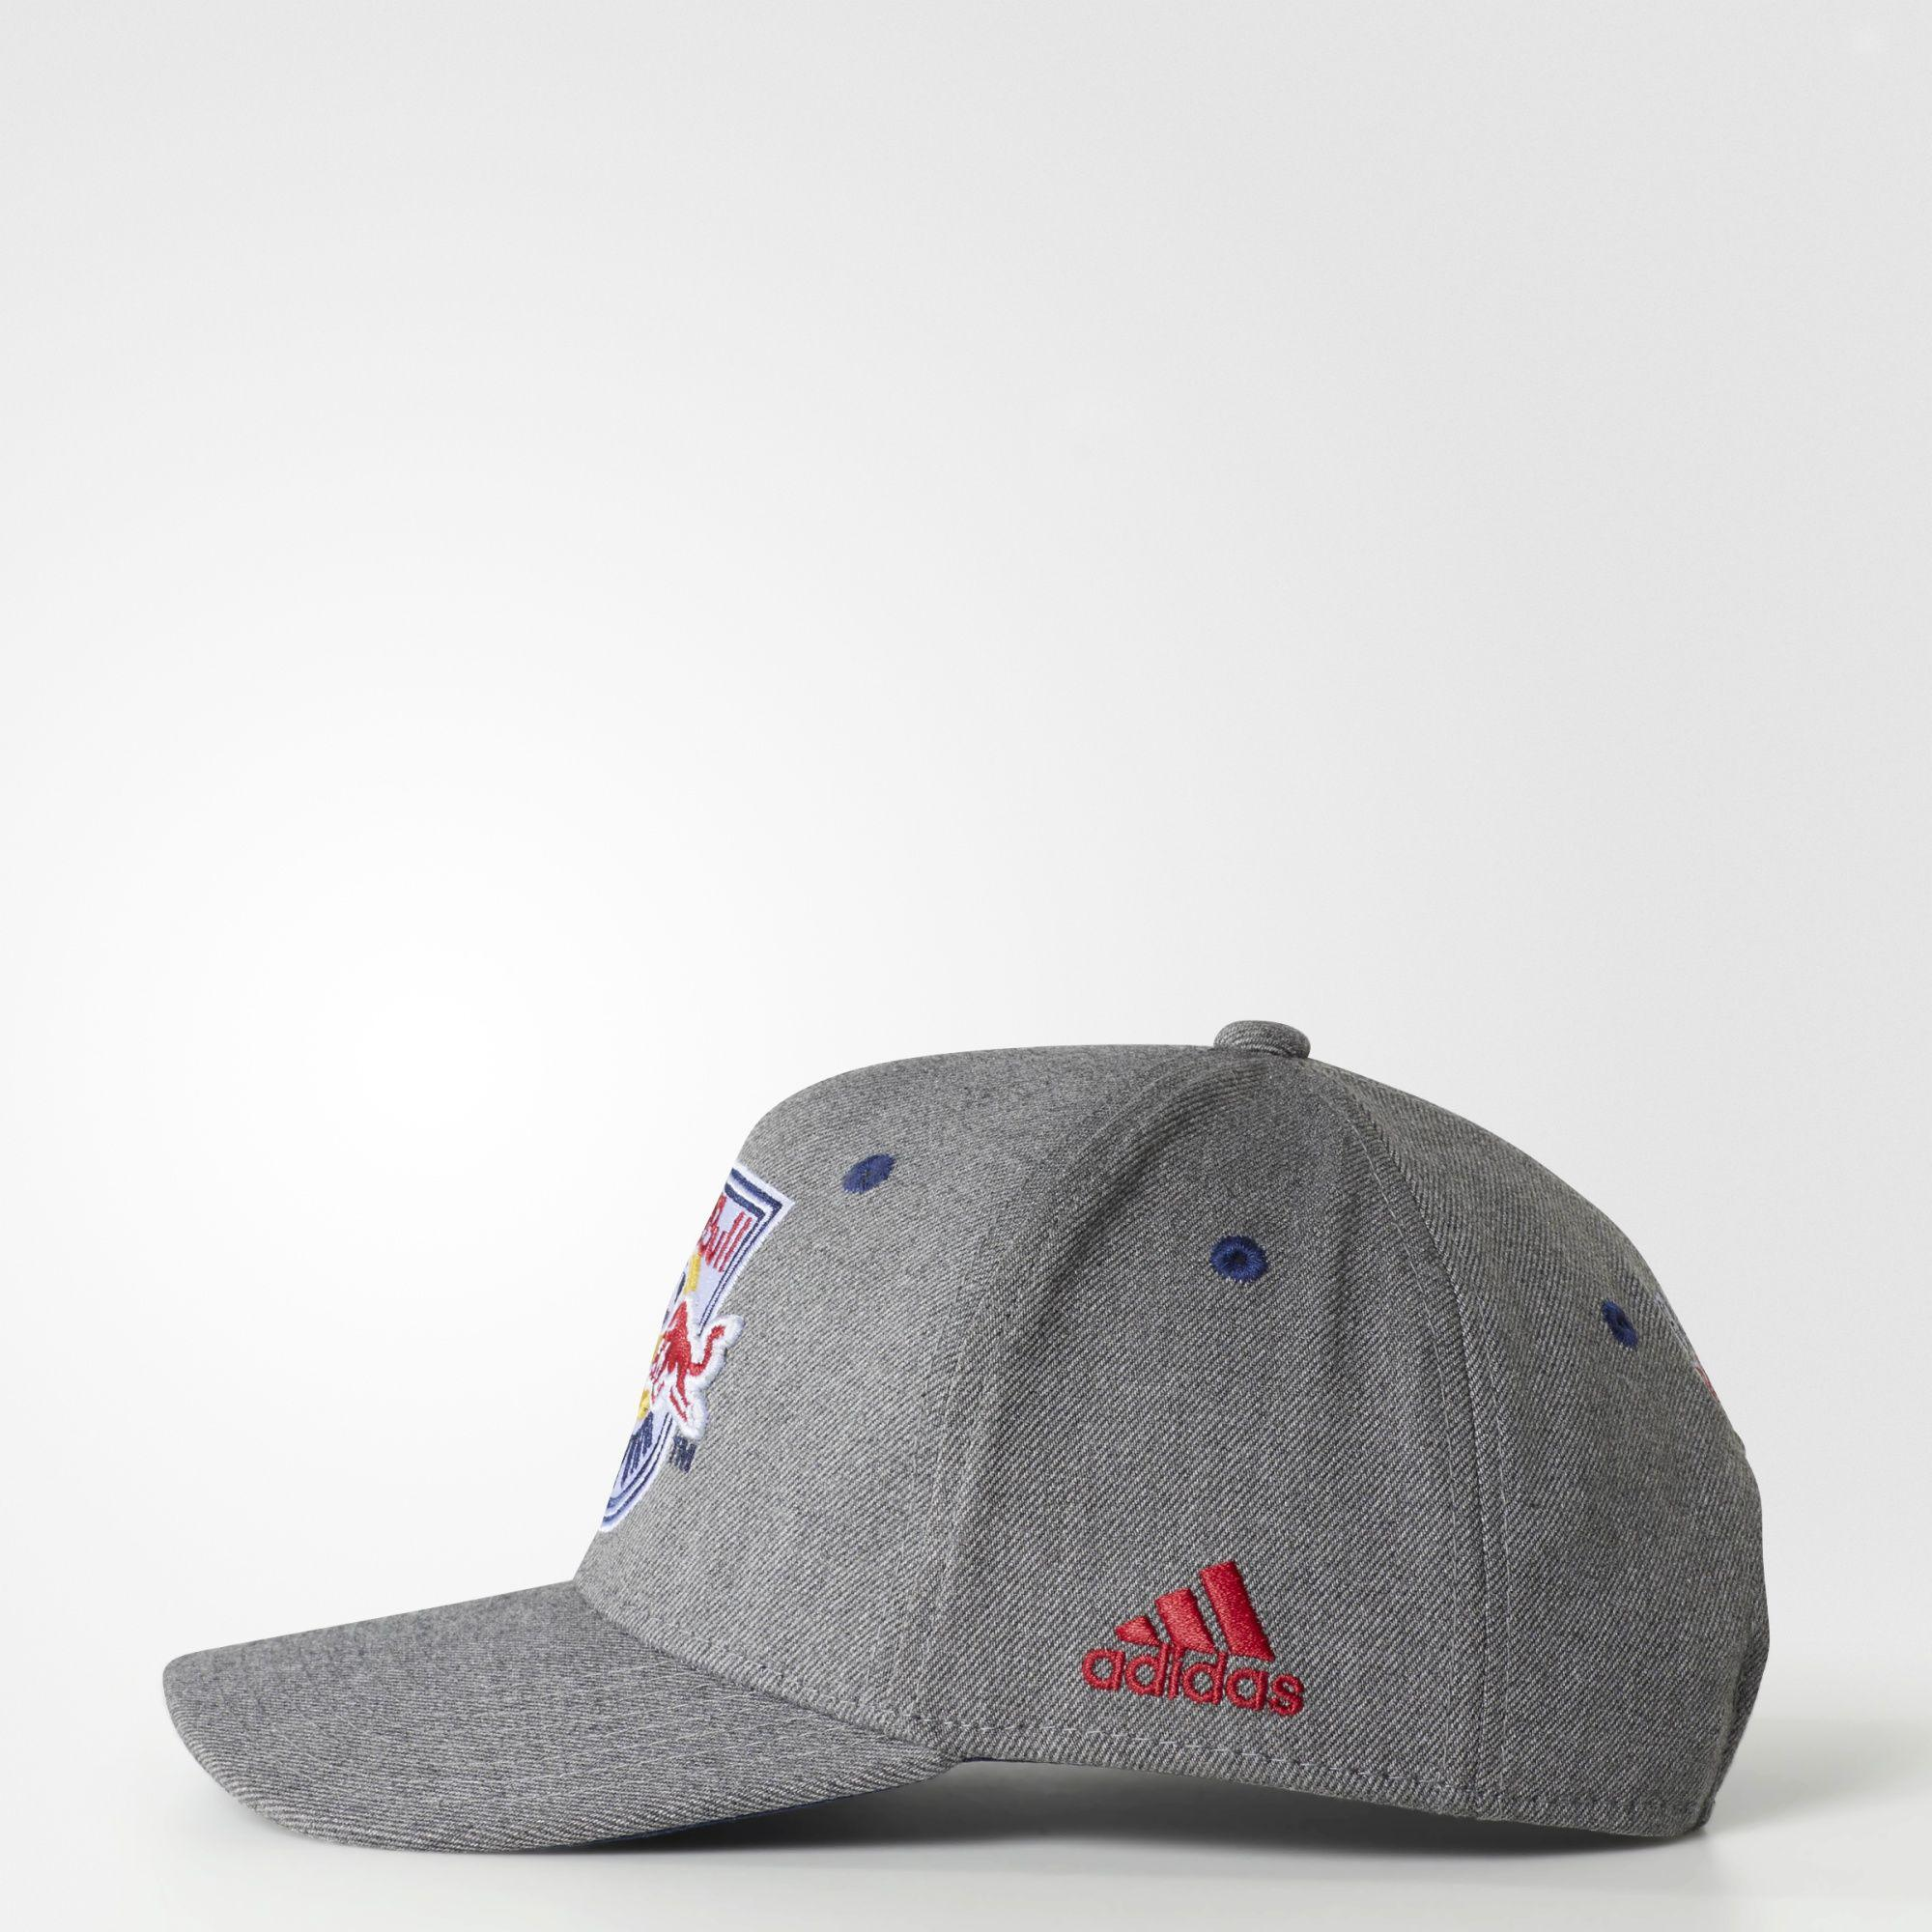 244327fa8e3c2 Lyst - adidas New York Red Bulls Structured Hat in Gray for Men